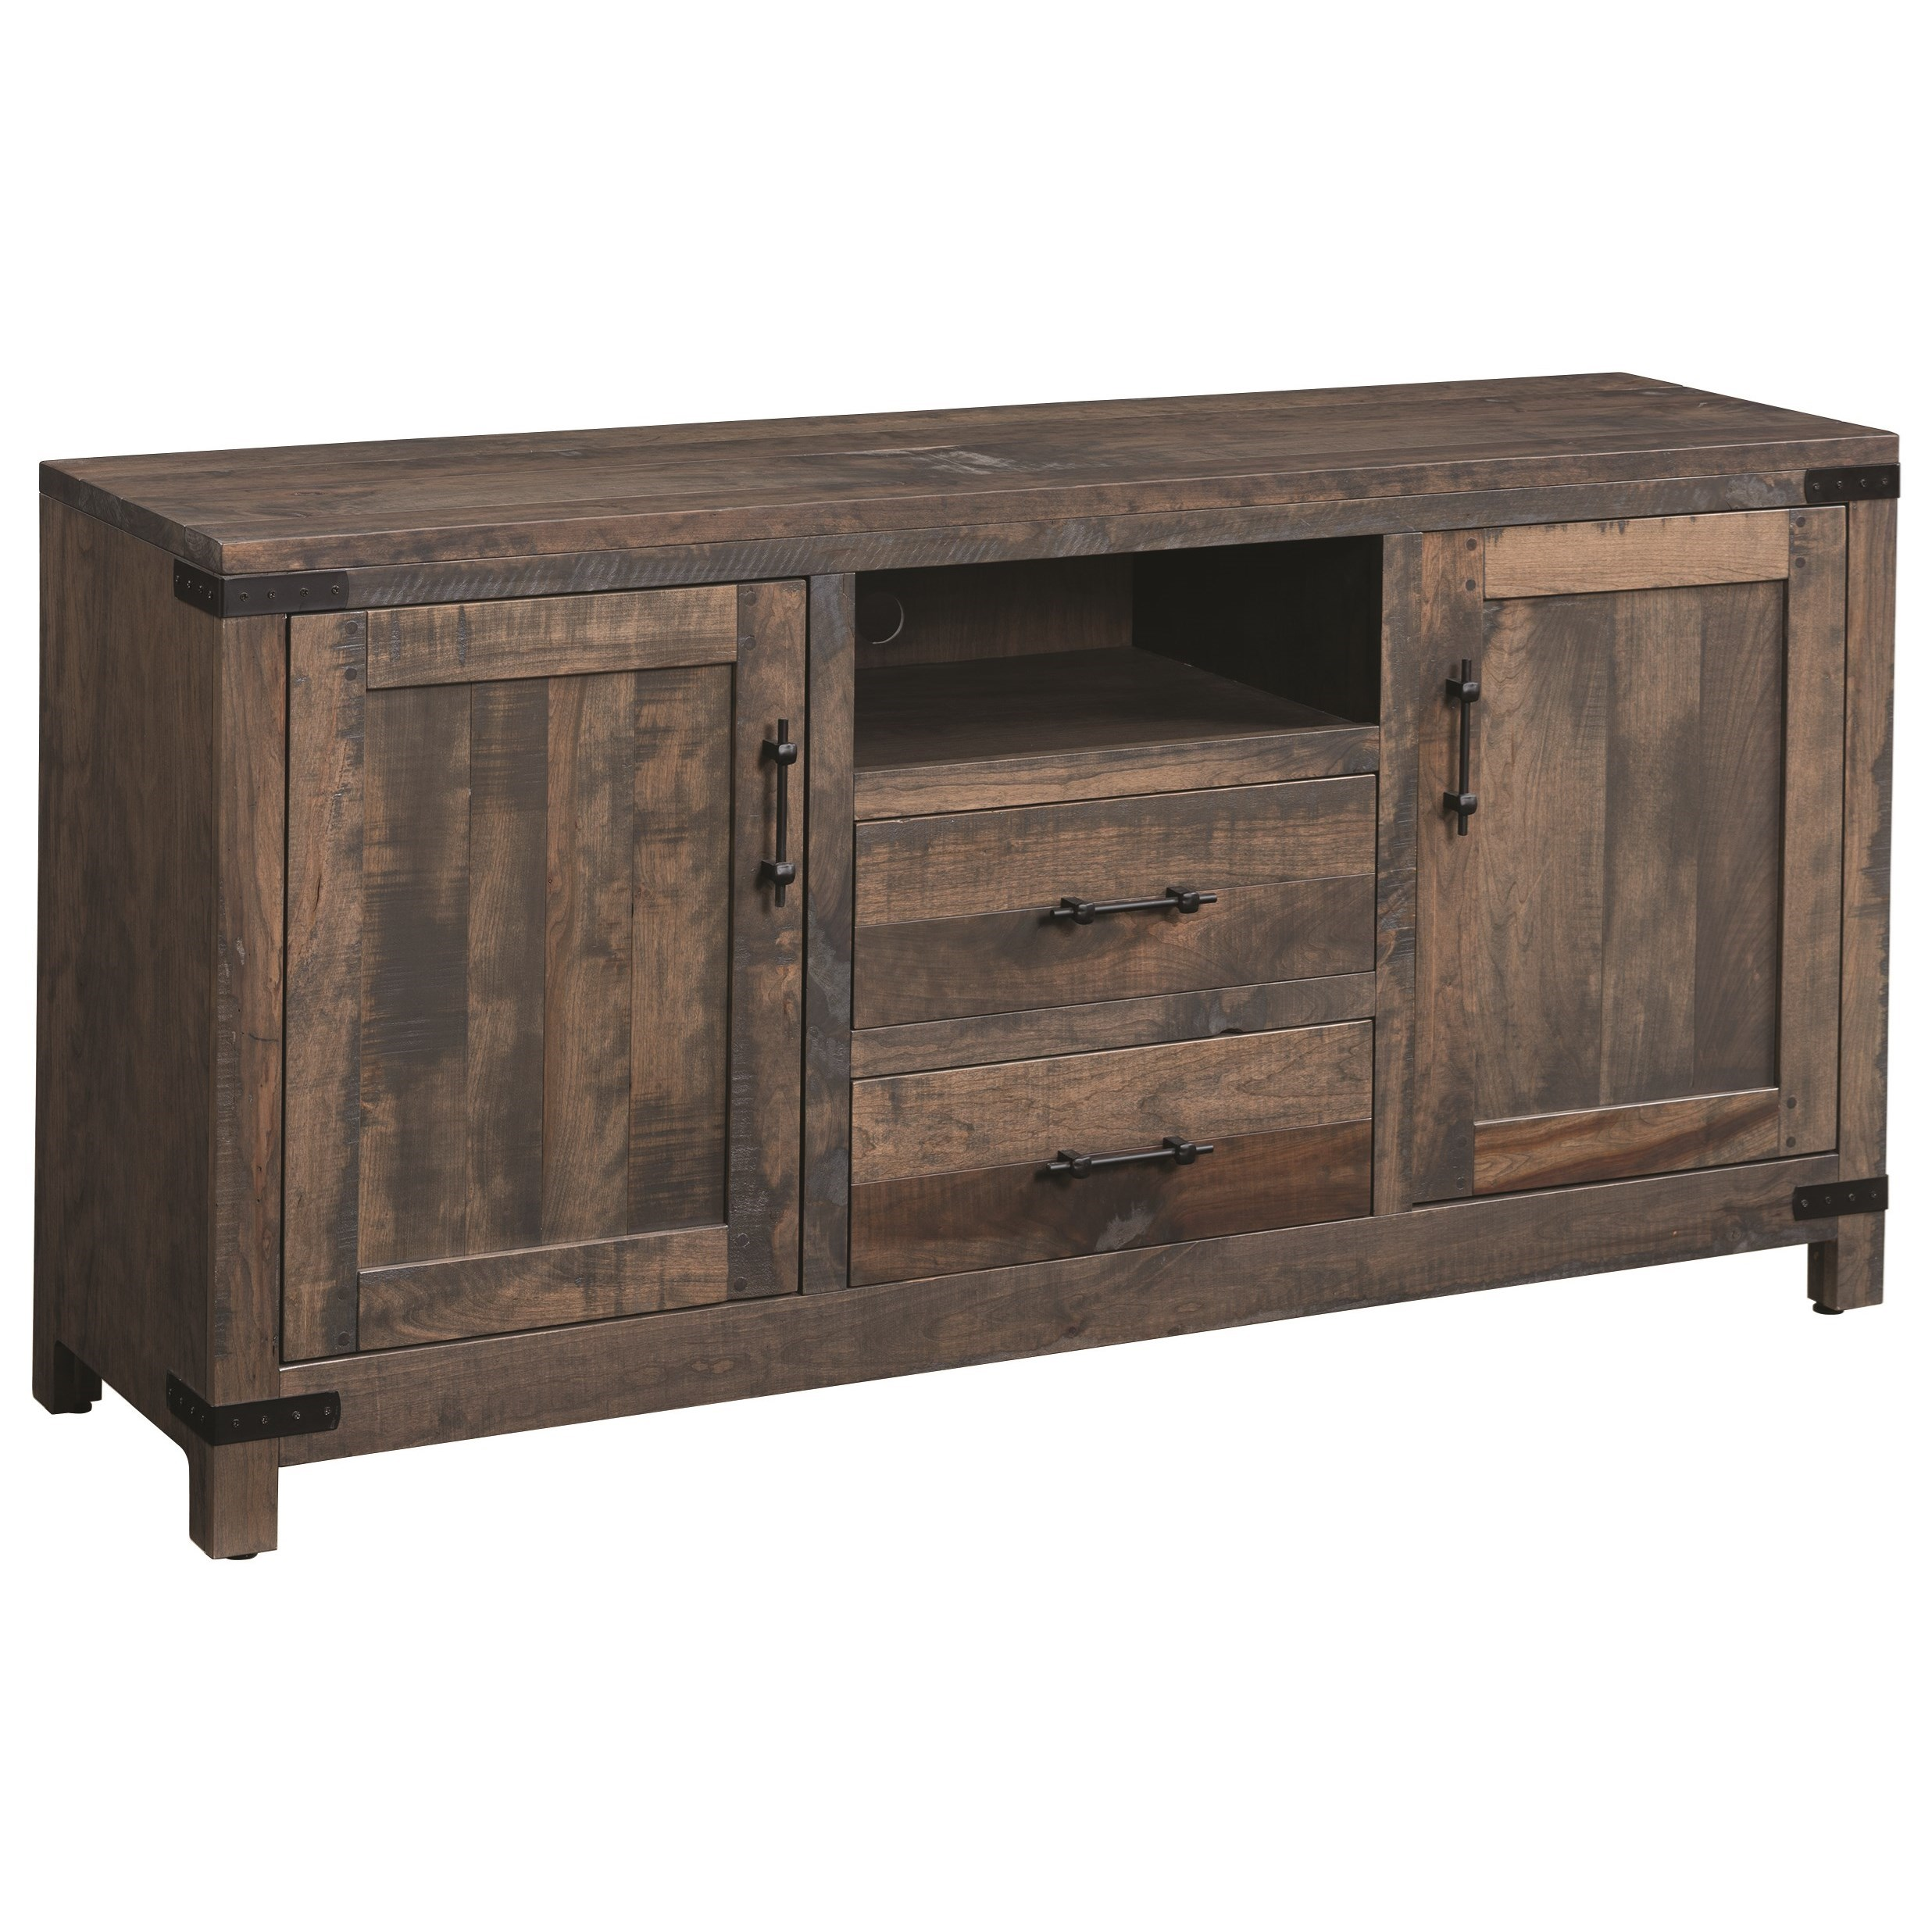 Entertainment Cascade TV Stand by INTEG Wood Products at Saugerties Furniture Mart